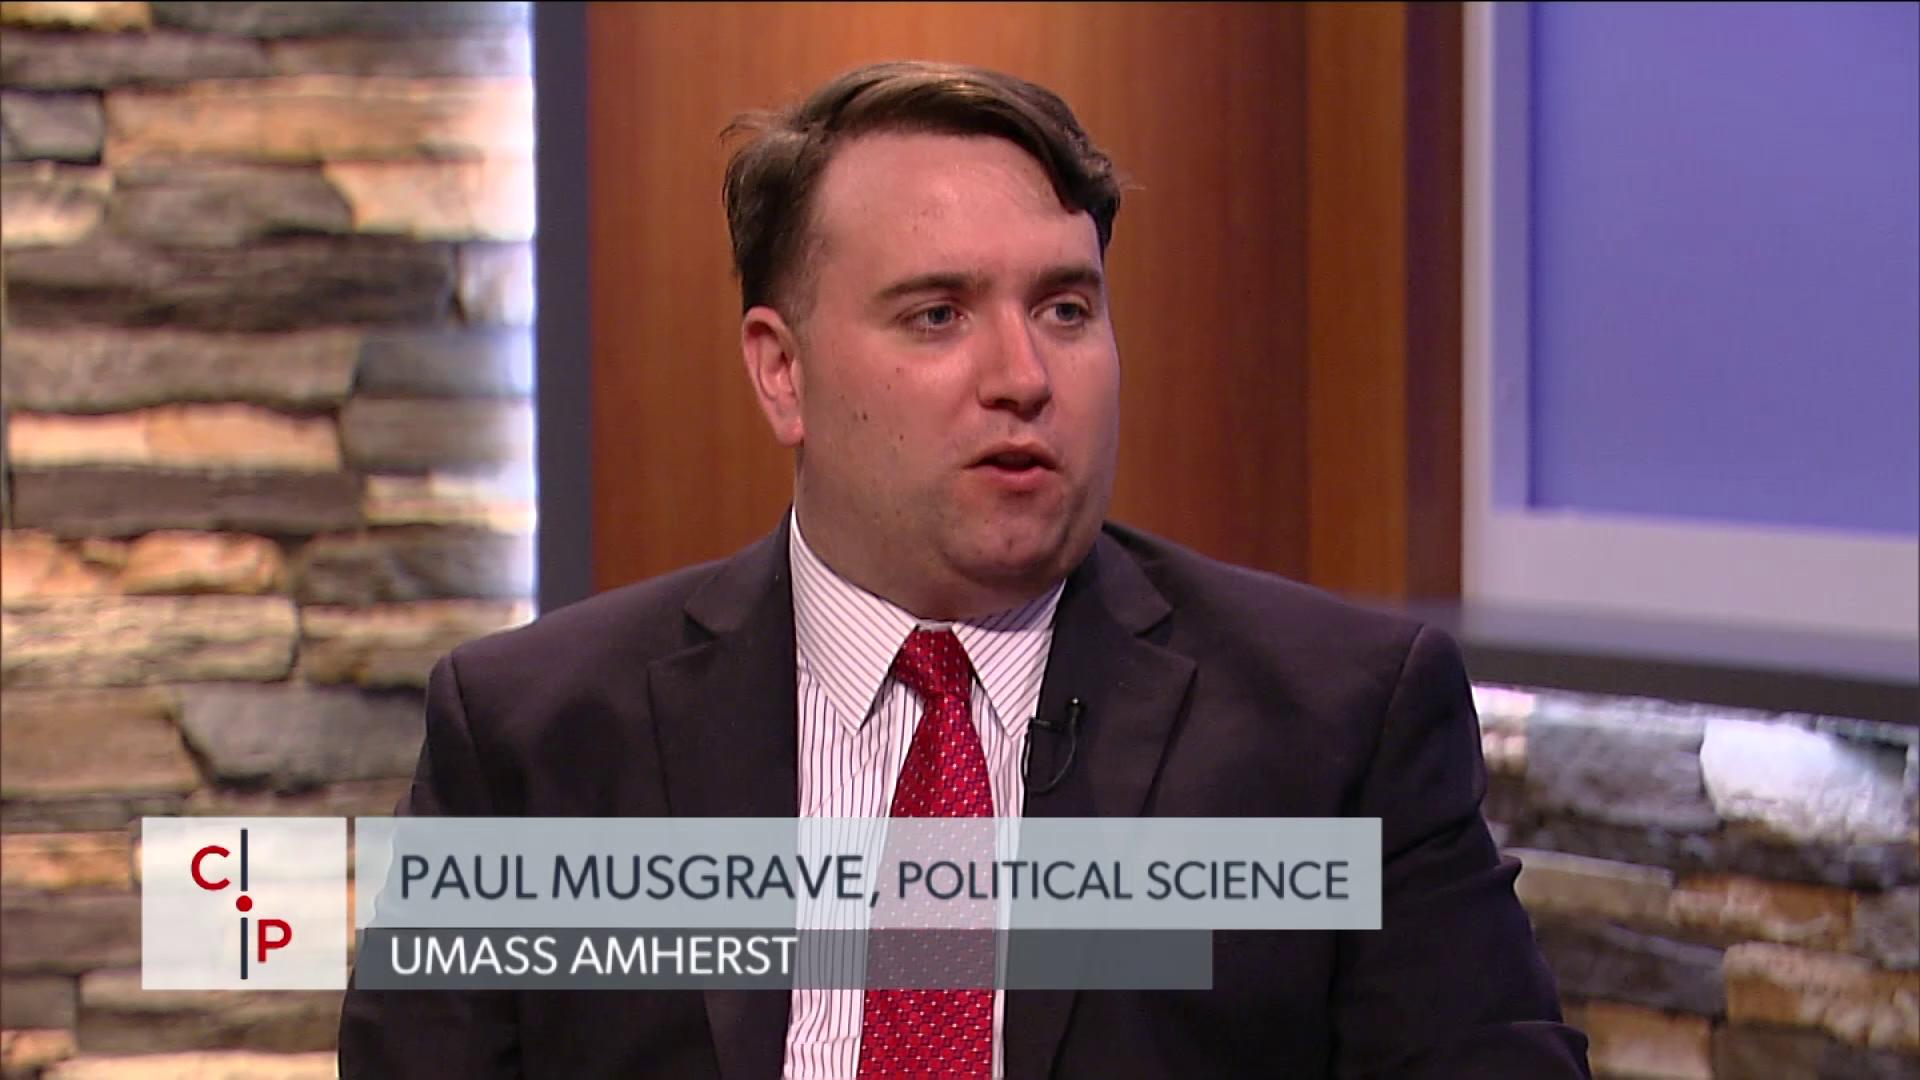 Paul Musgrave, Assistant Professor of Political Science at UMass Amherst, joins Carrie Saldo to unpack the latest updates in North Korea, including nuclear disarmament, a formal end to the Korean War, and thawing relations with the US and the Trump Administration.